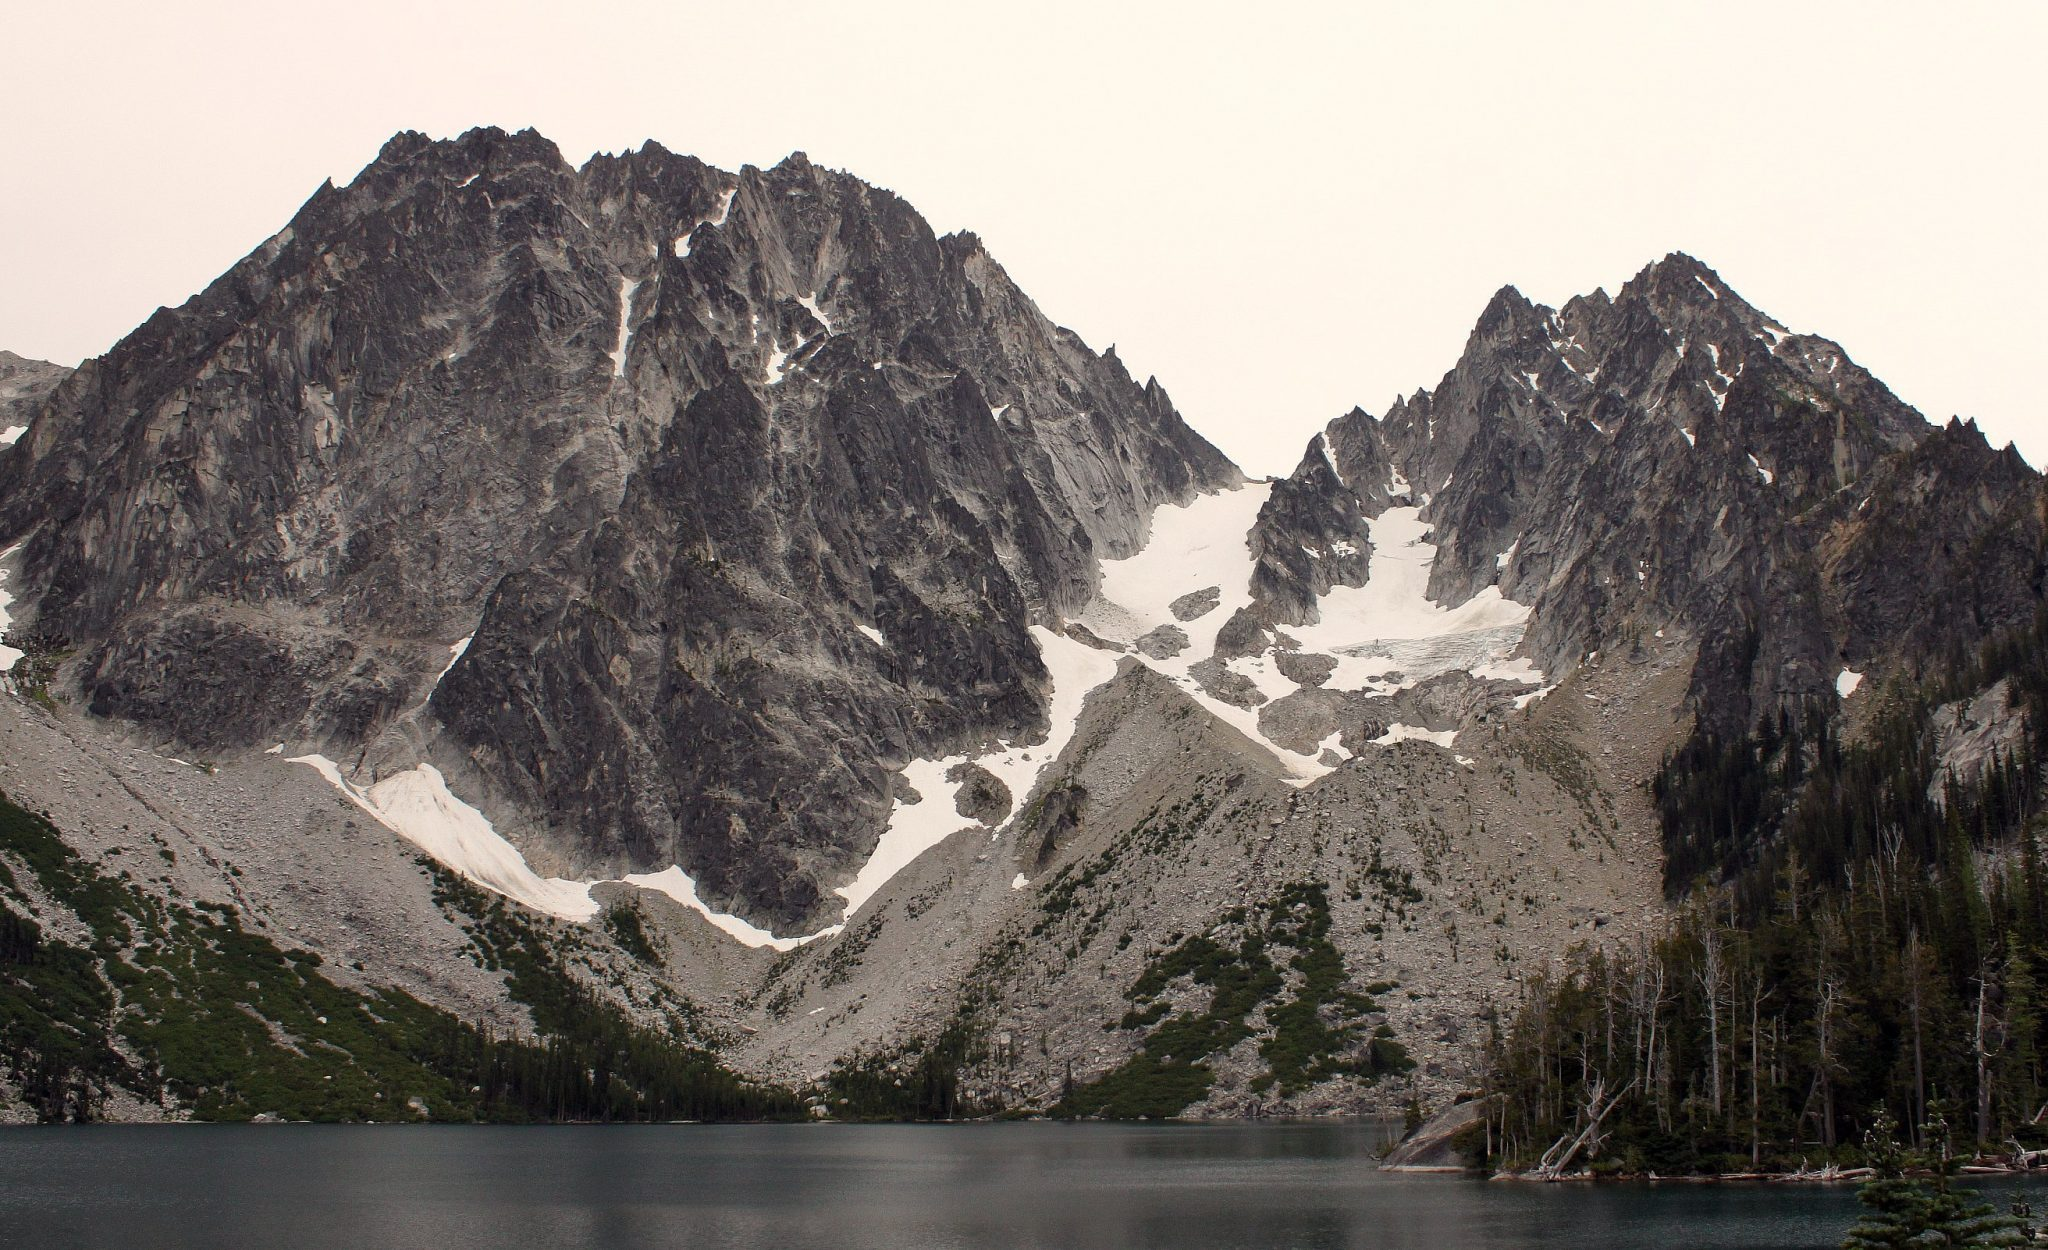 Dragontail Peak (left) and Colchuck Peak